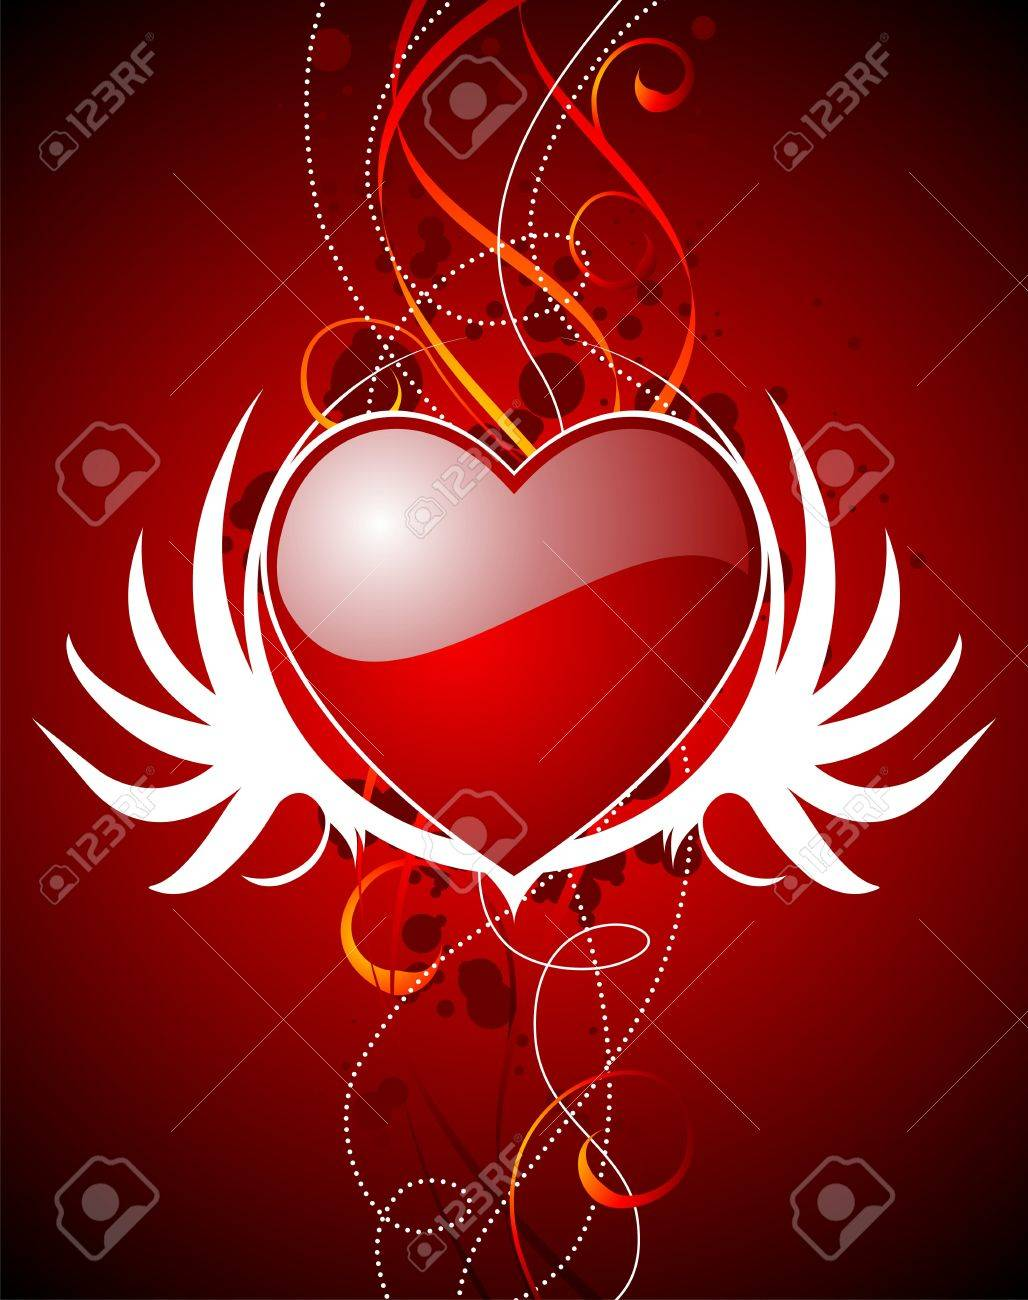 Valentine's day illustration with glossy red hearts and wings. Stock Vector - 7316269